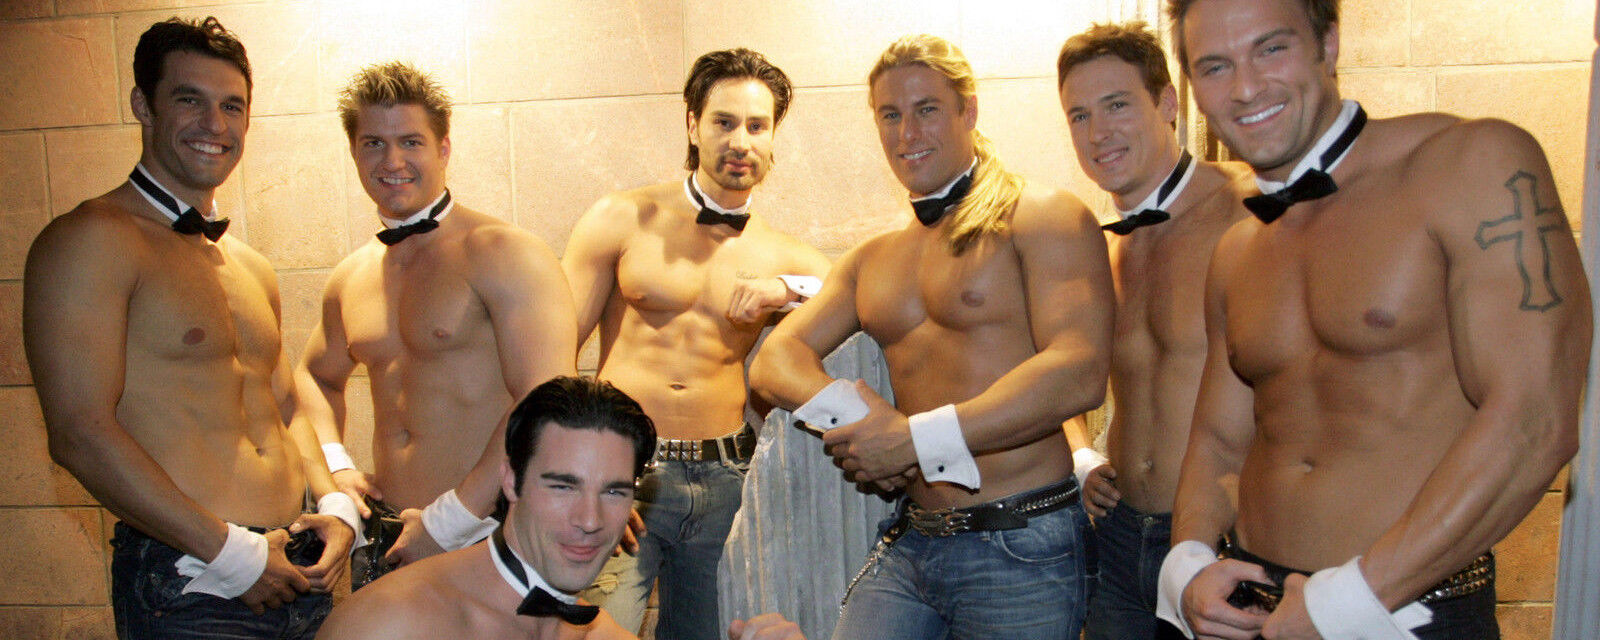 Chippendales Tour Tickets (18+ Event)